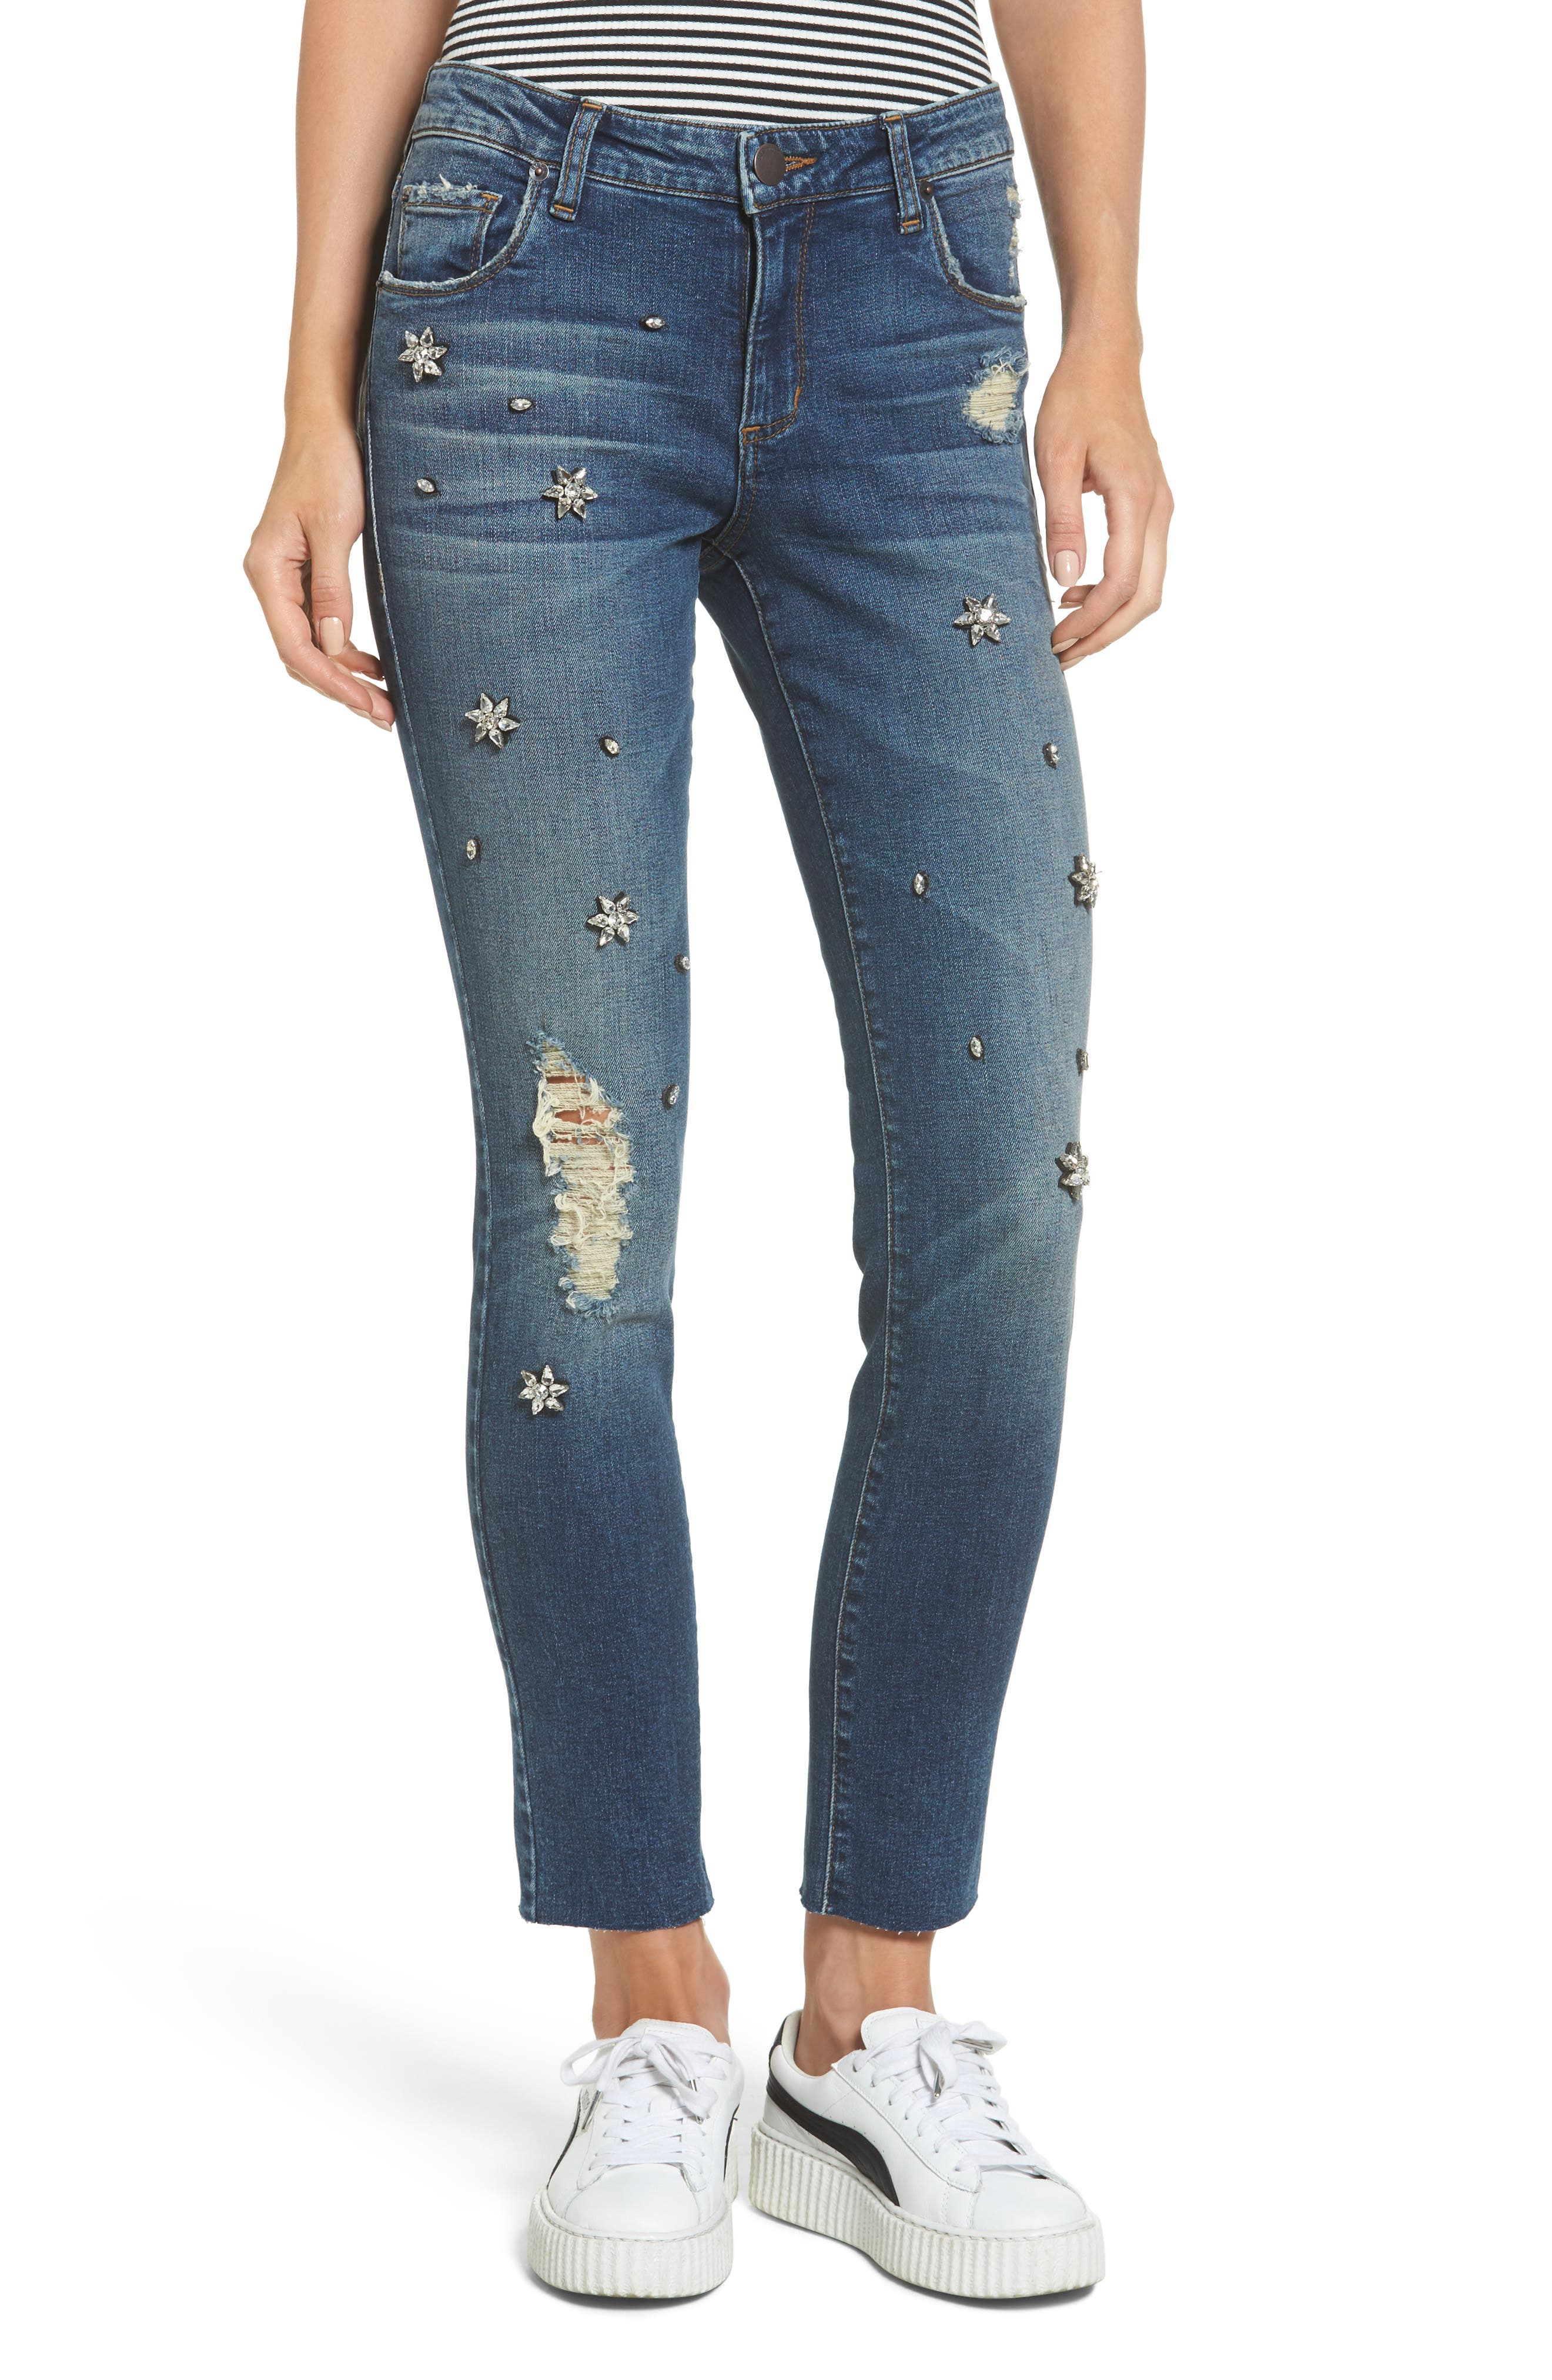 Taylor Jeweled Crop Straight Leg Jeans,                         Main,                         color, East River View